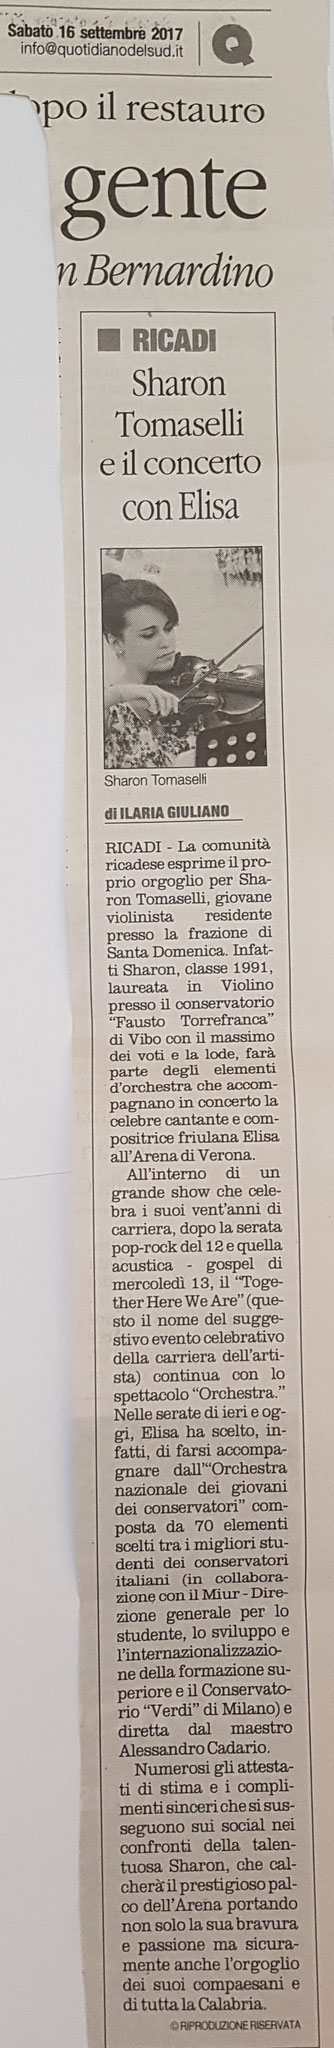 Il Quotidiano del Sud 16/09/2017